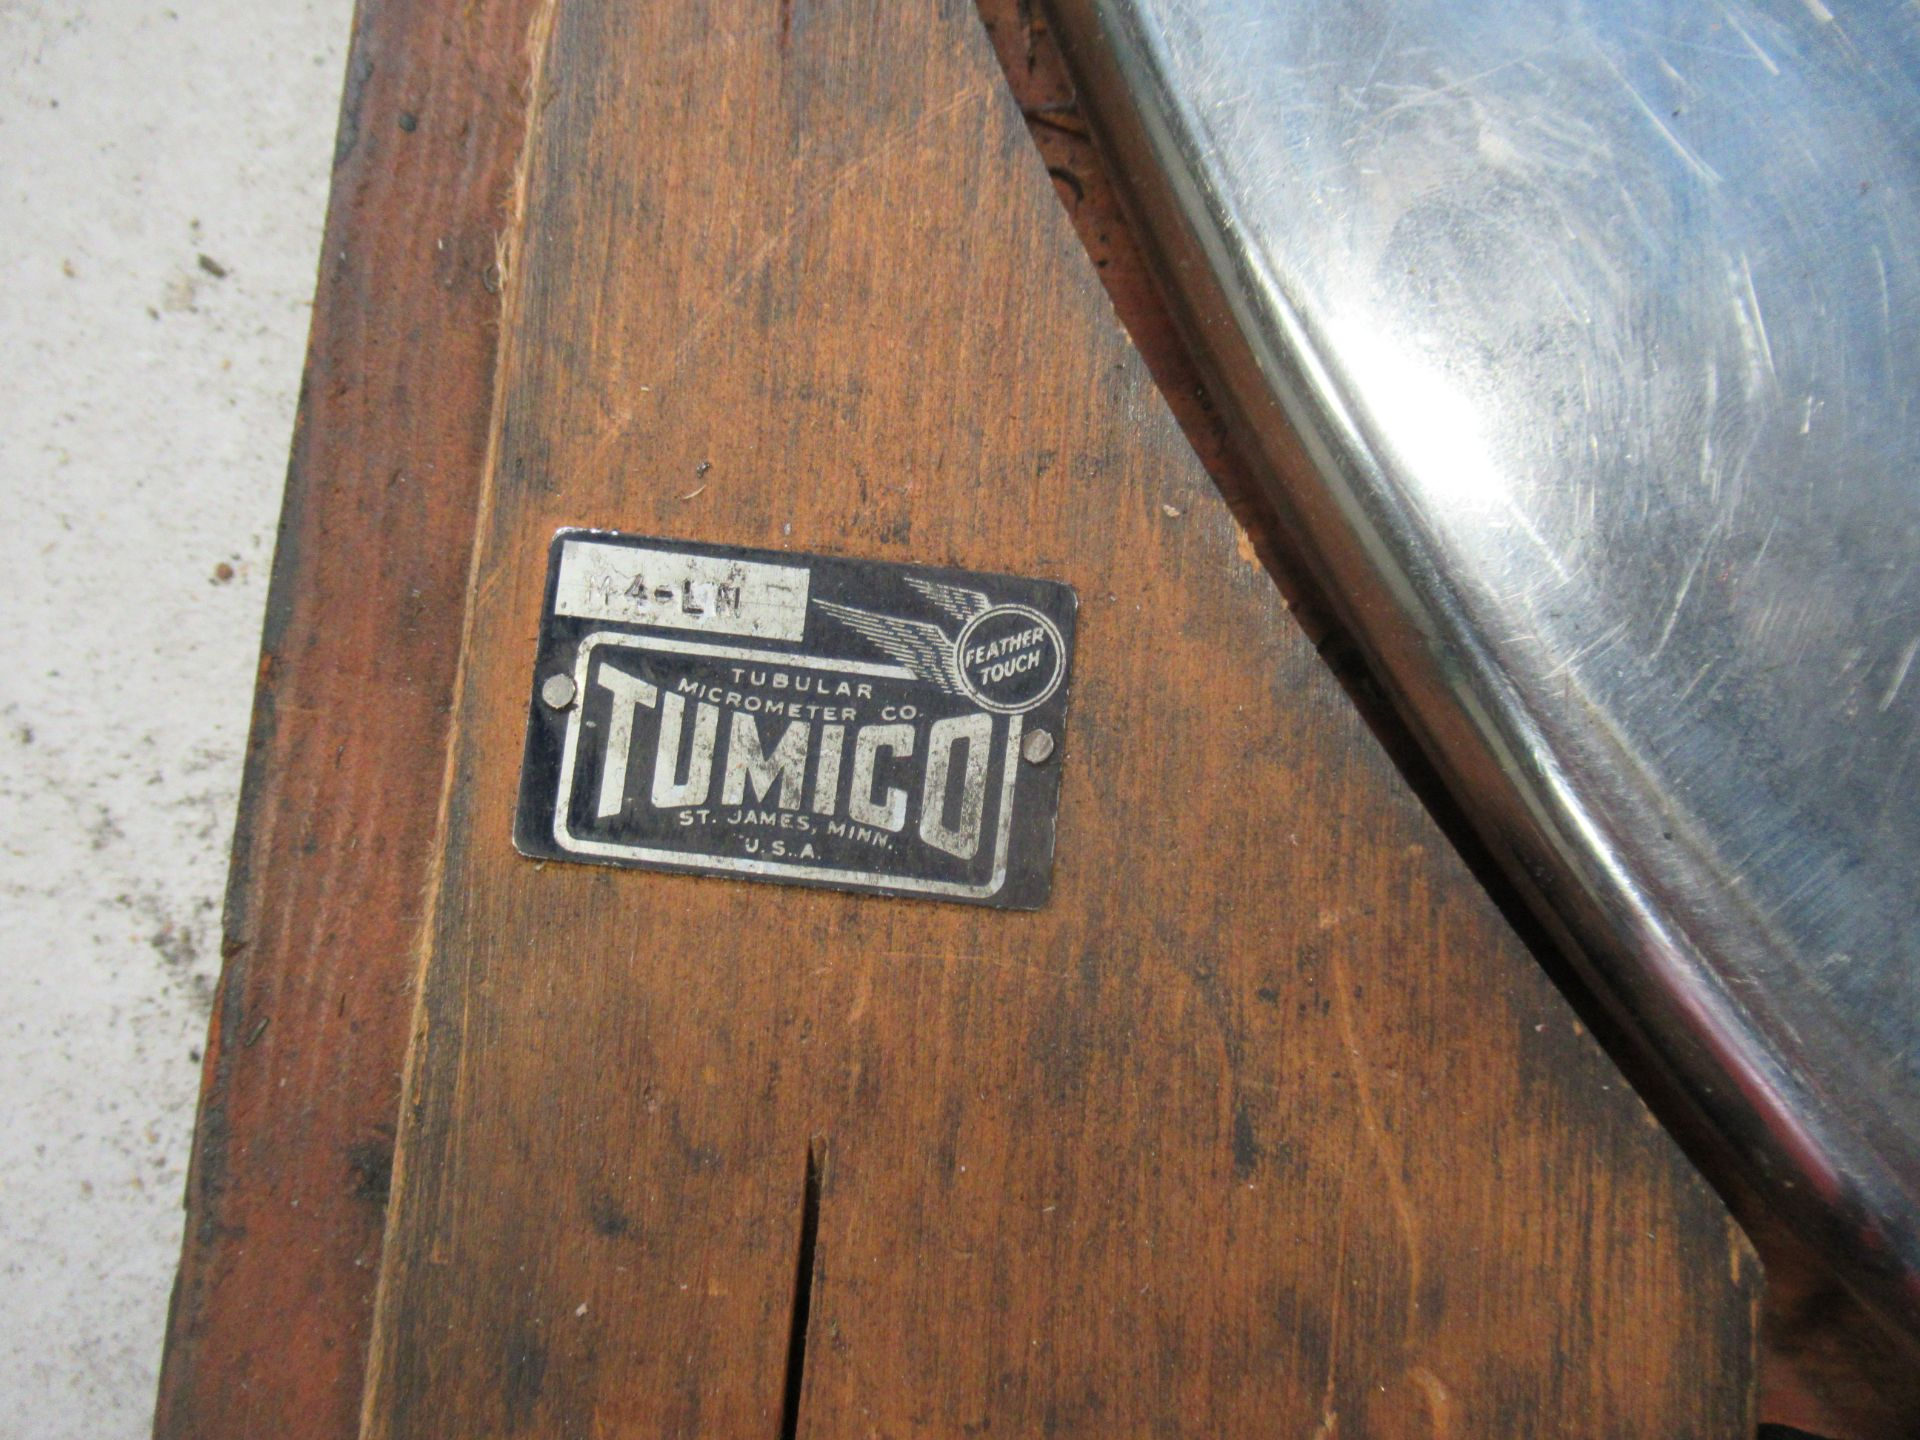 "TUMICO APPROXIMATELY 24"" -30"" MICROMETER - Image 2 of 2"